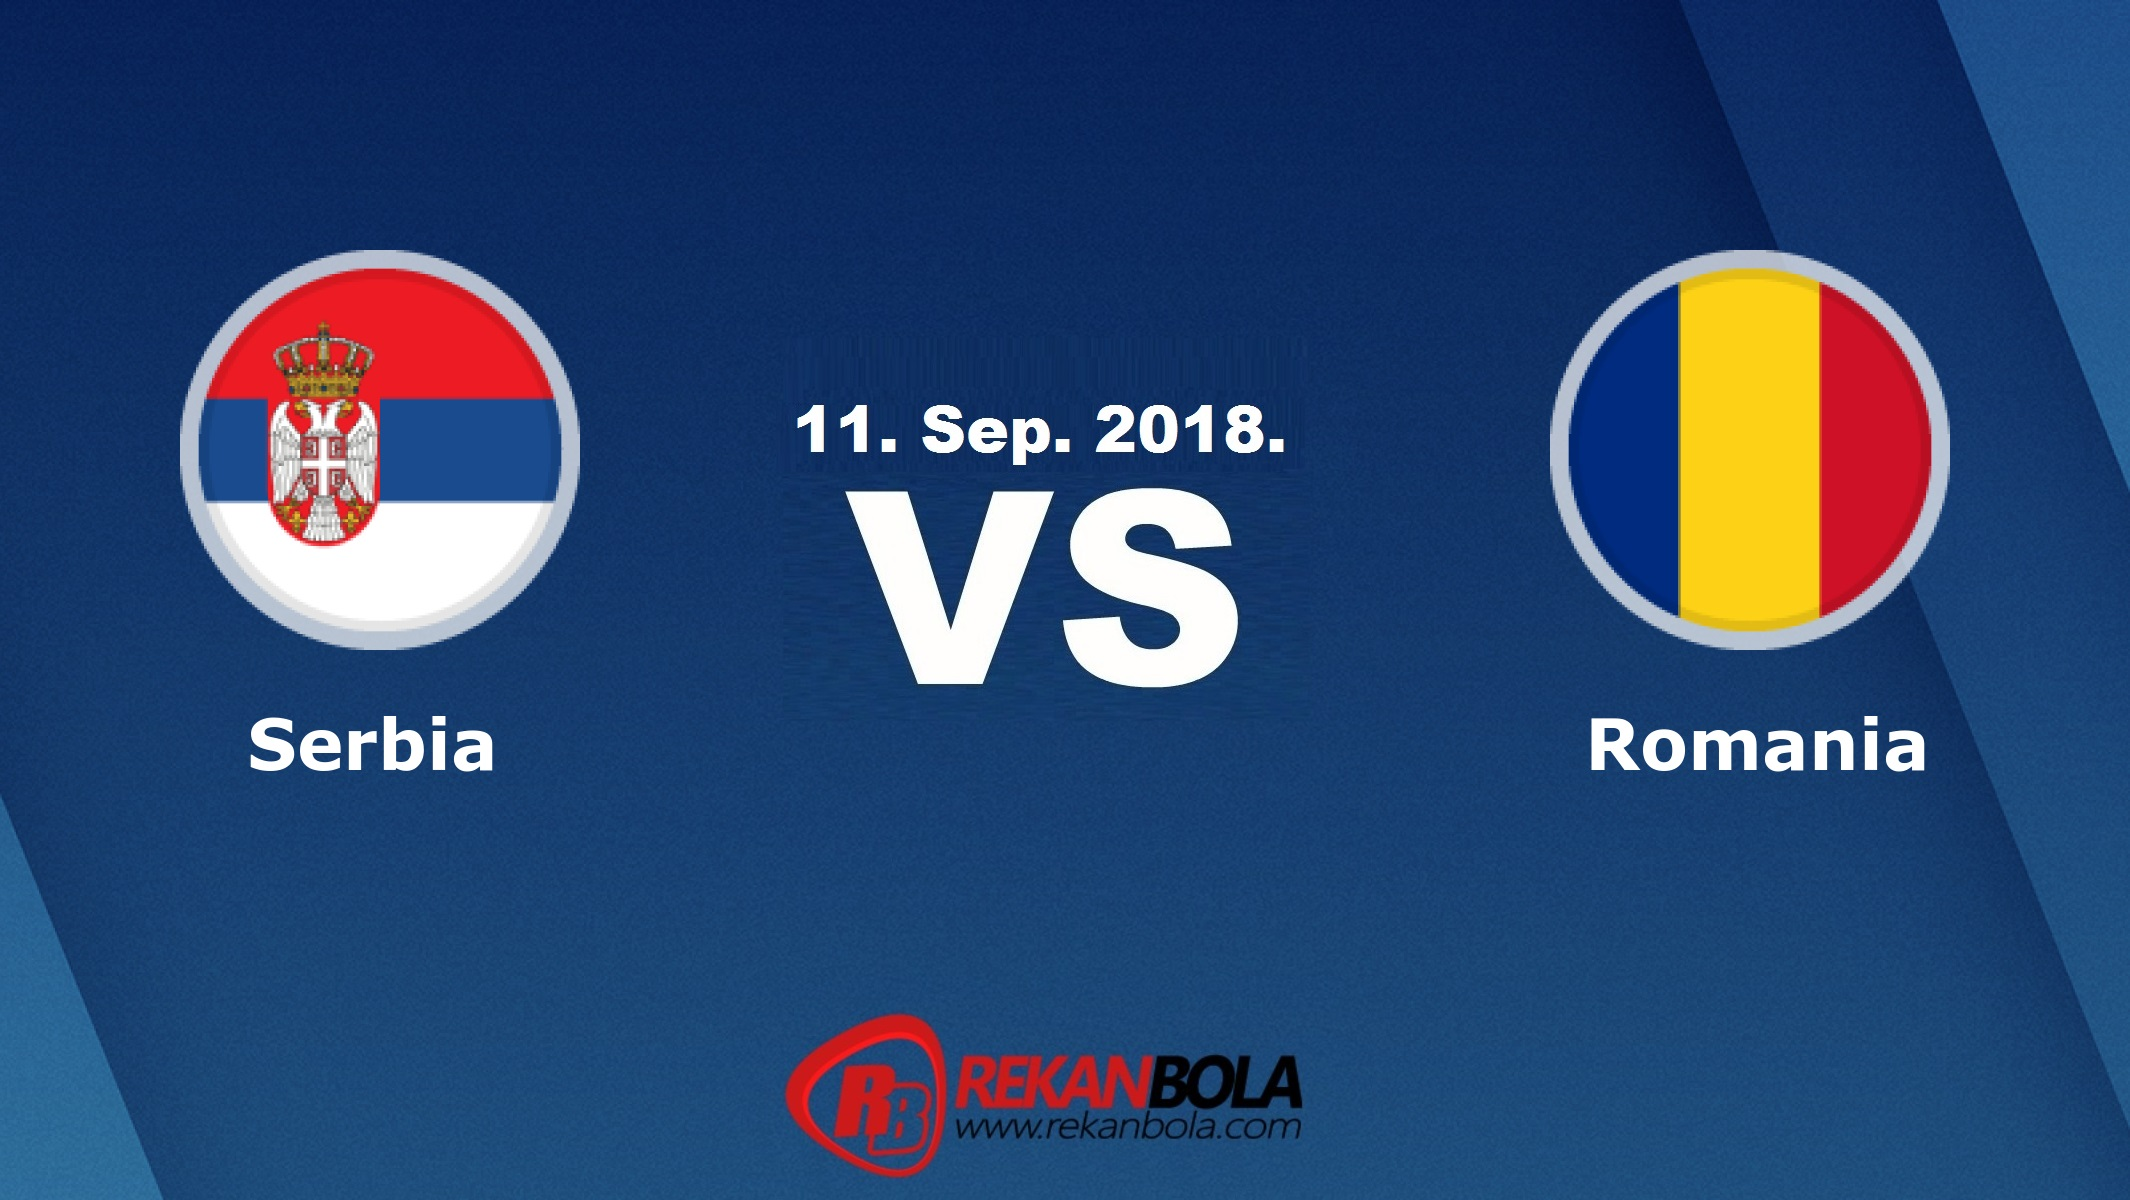 Nonton Siaran Live Streaming Serbia Vs Rumania 11 September 2018